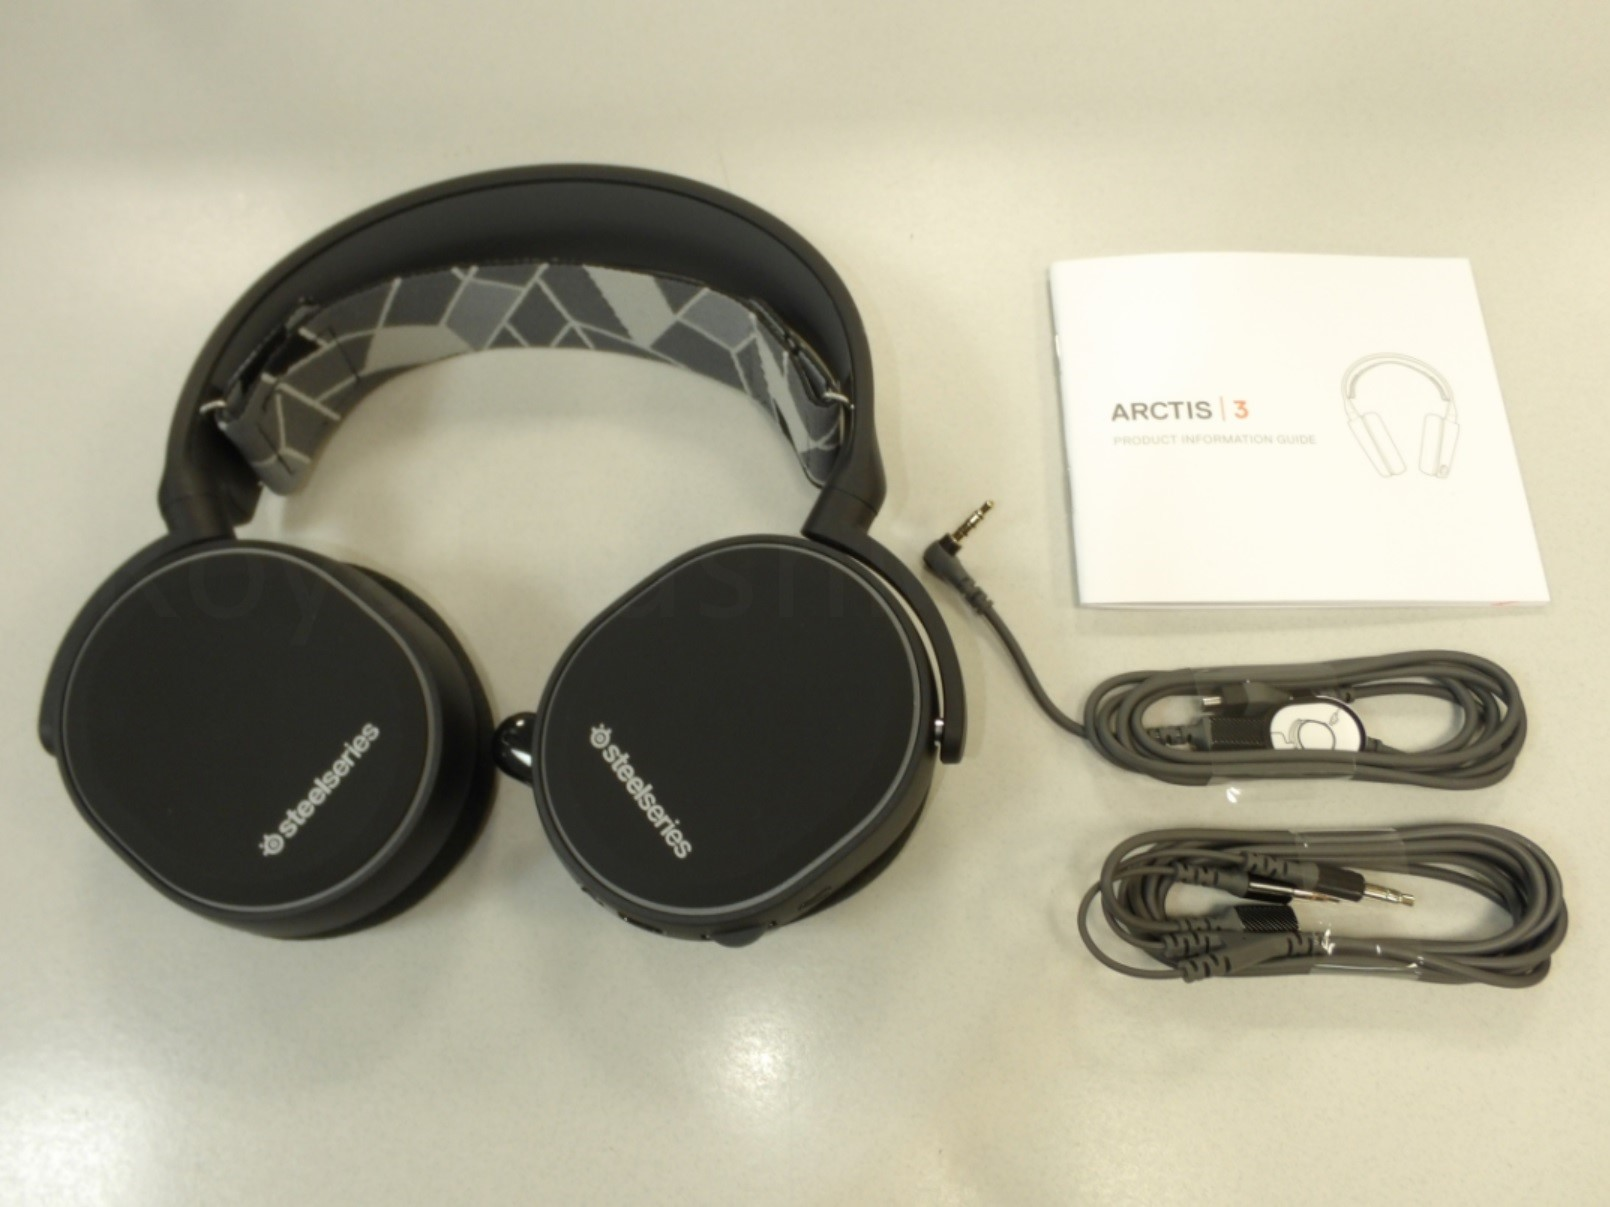 steelseries arctis 3 gaming headset review. Black Bedroom Furniture Sets. Home Design Ideas